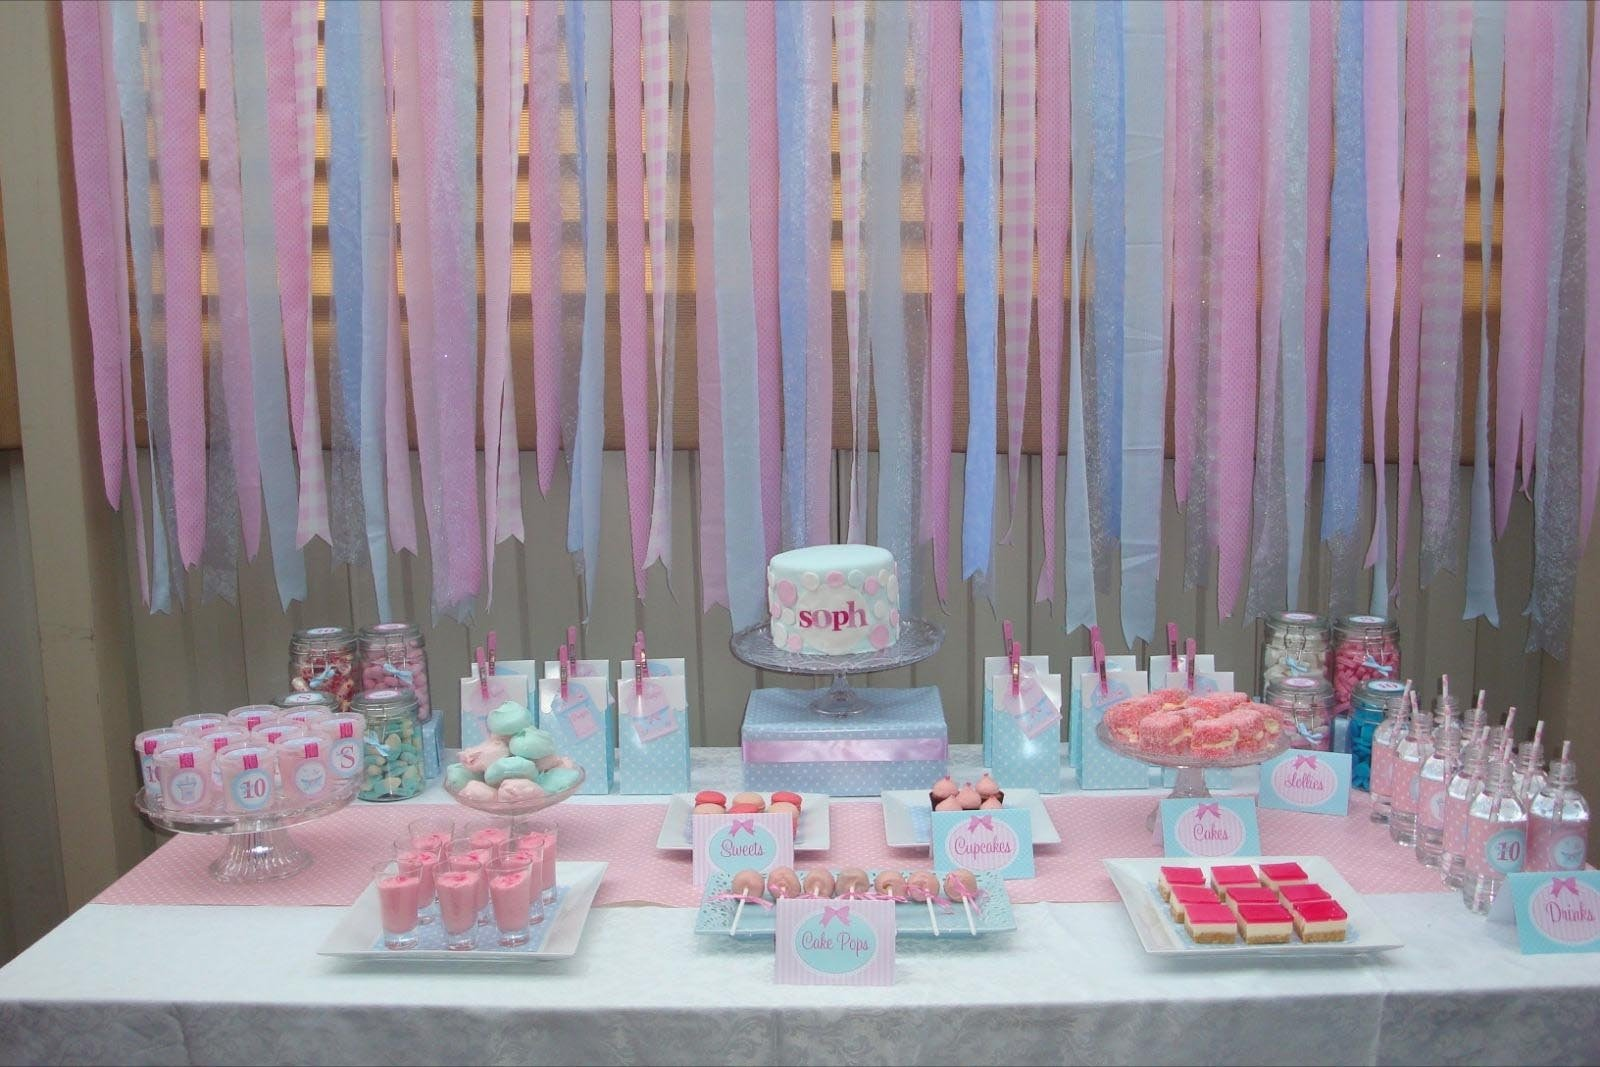 10 Gorgeous Birthday Party Ideas For 9 Year Old Girl Spa Food Home